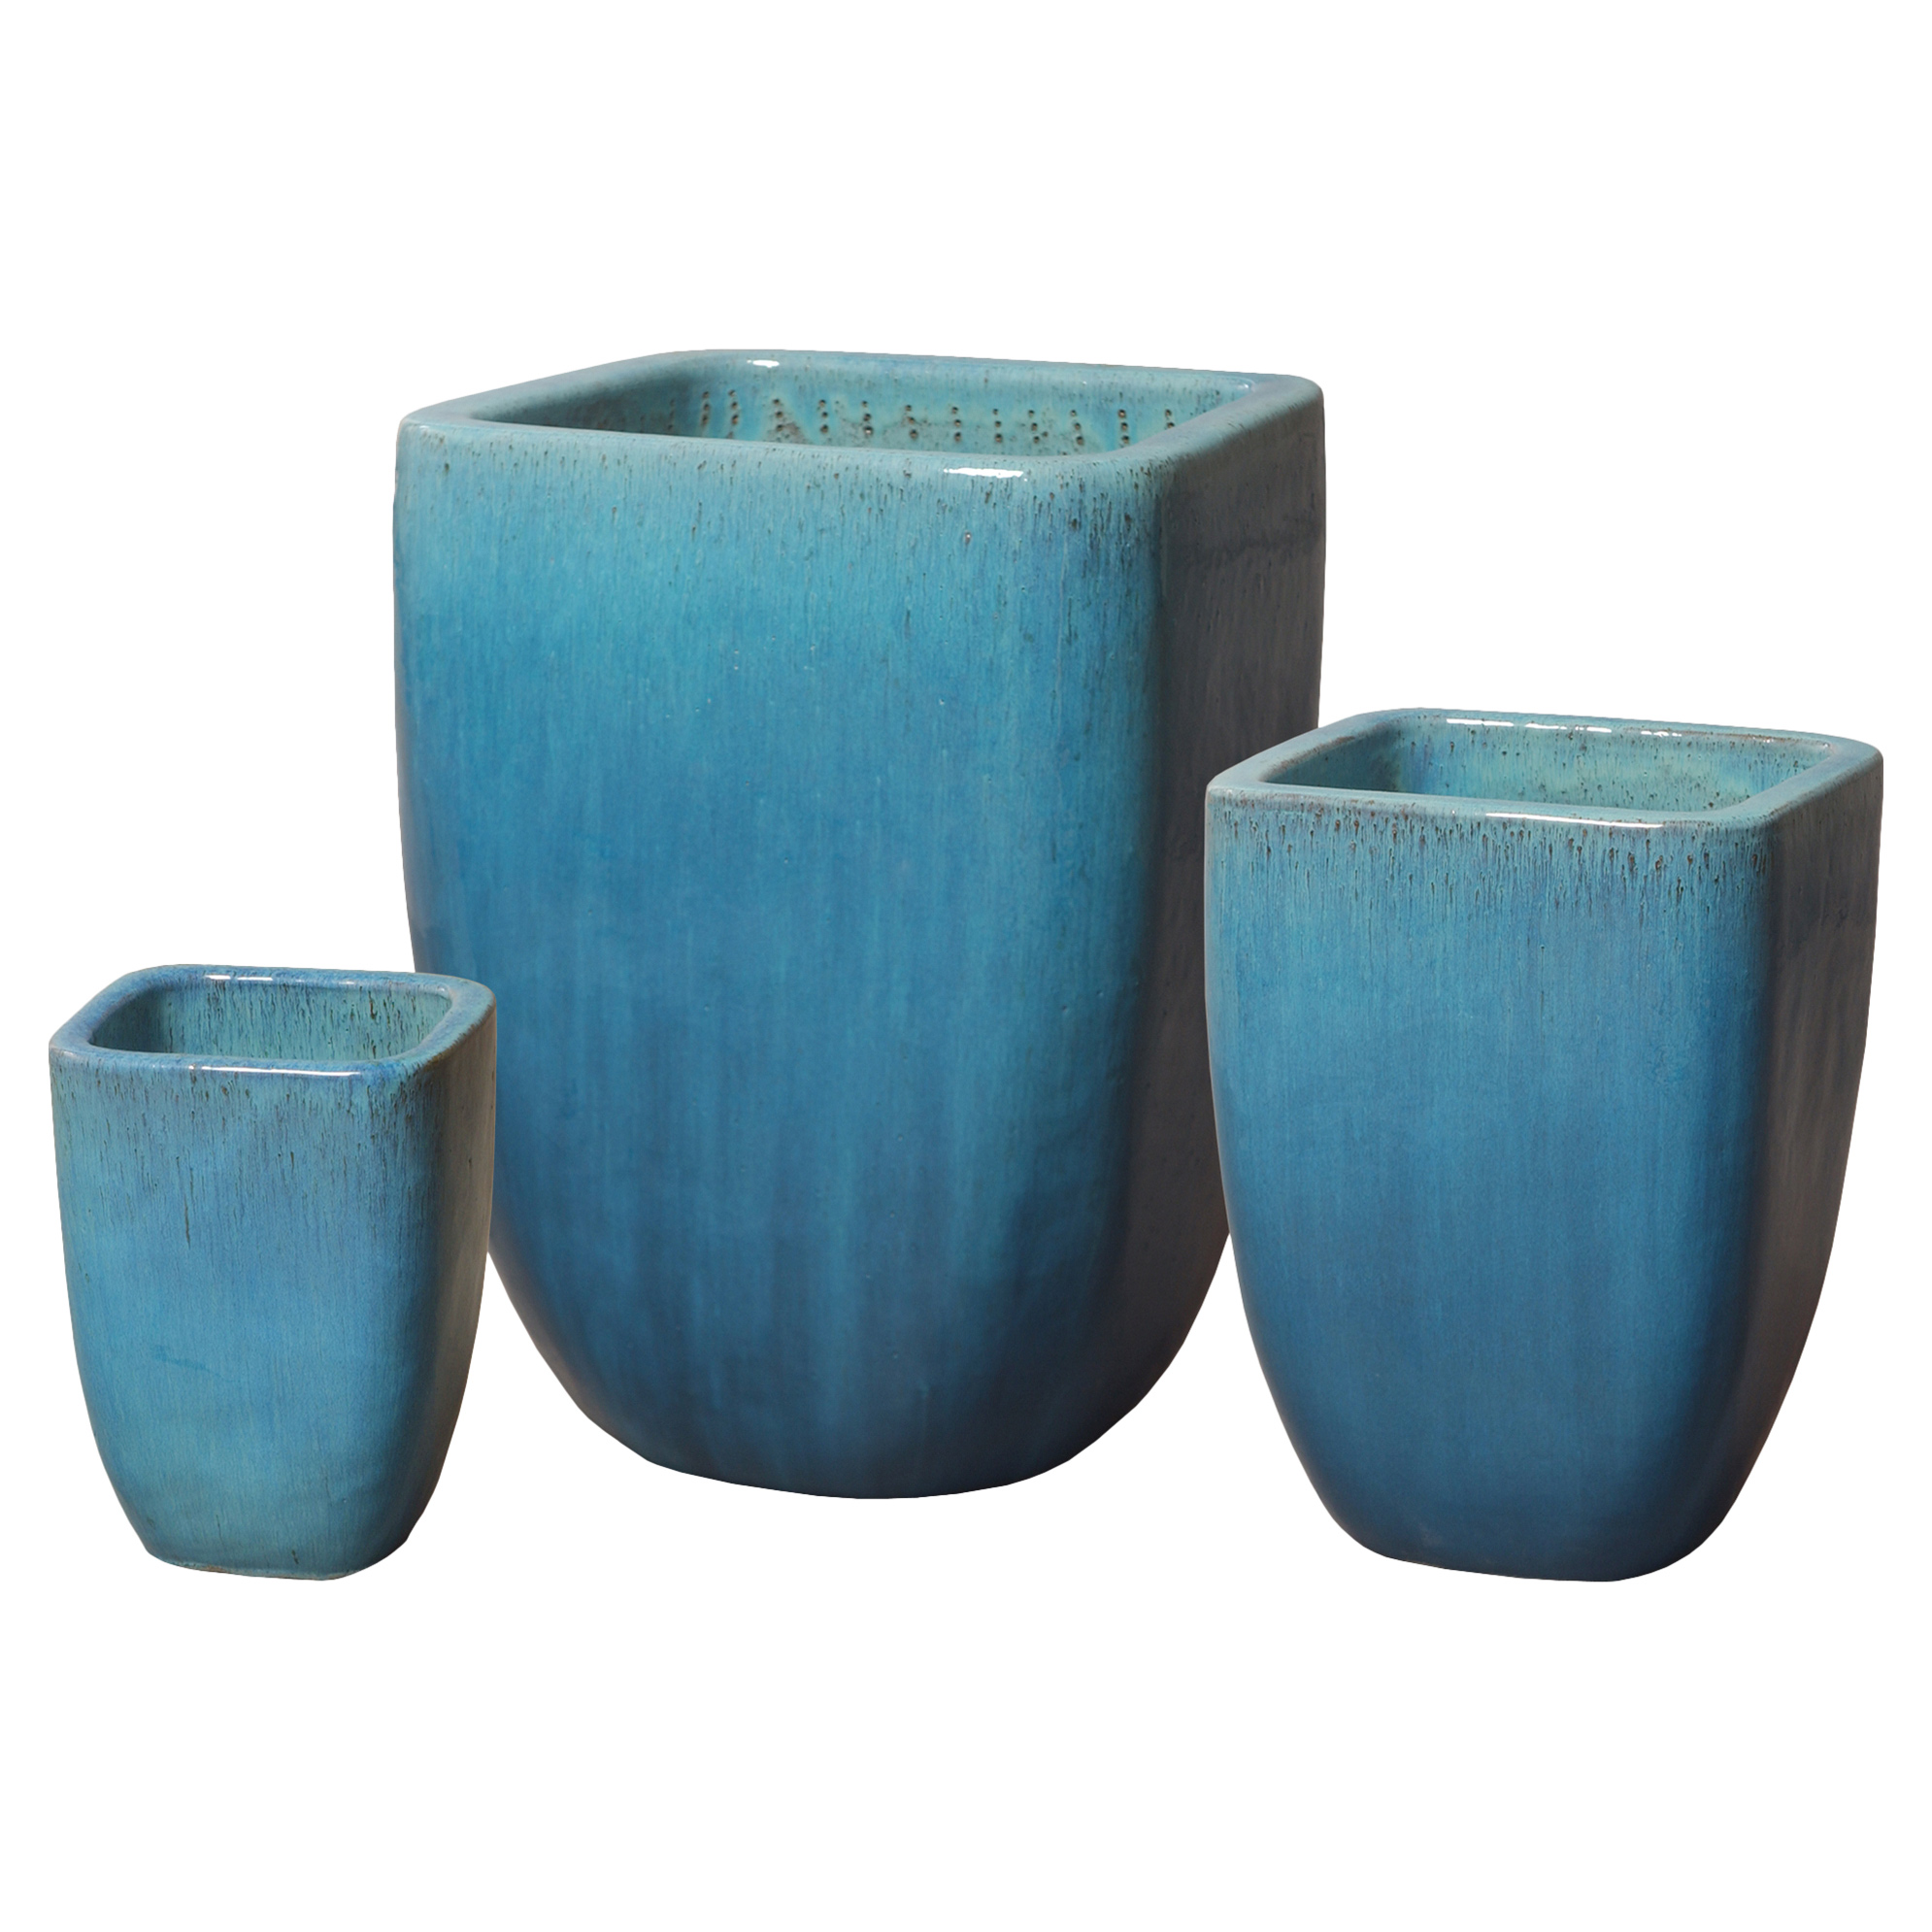 Kami Coastal Beach Square Blue Ceramic Planters - Set of 3